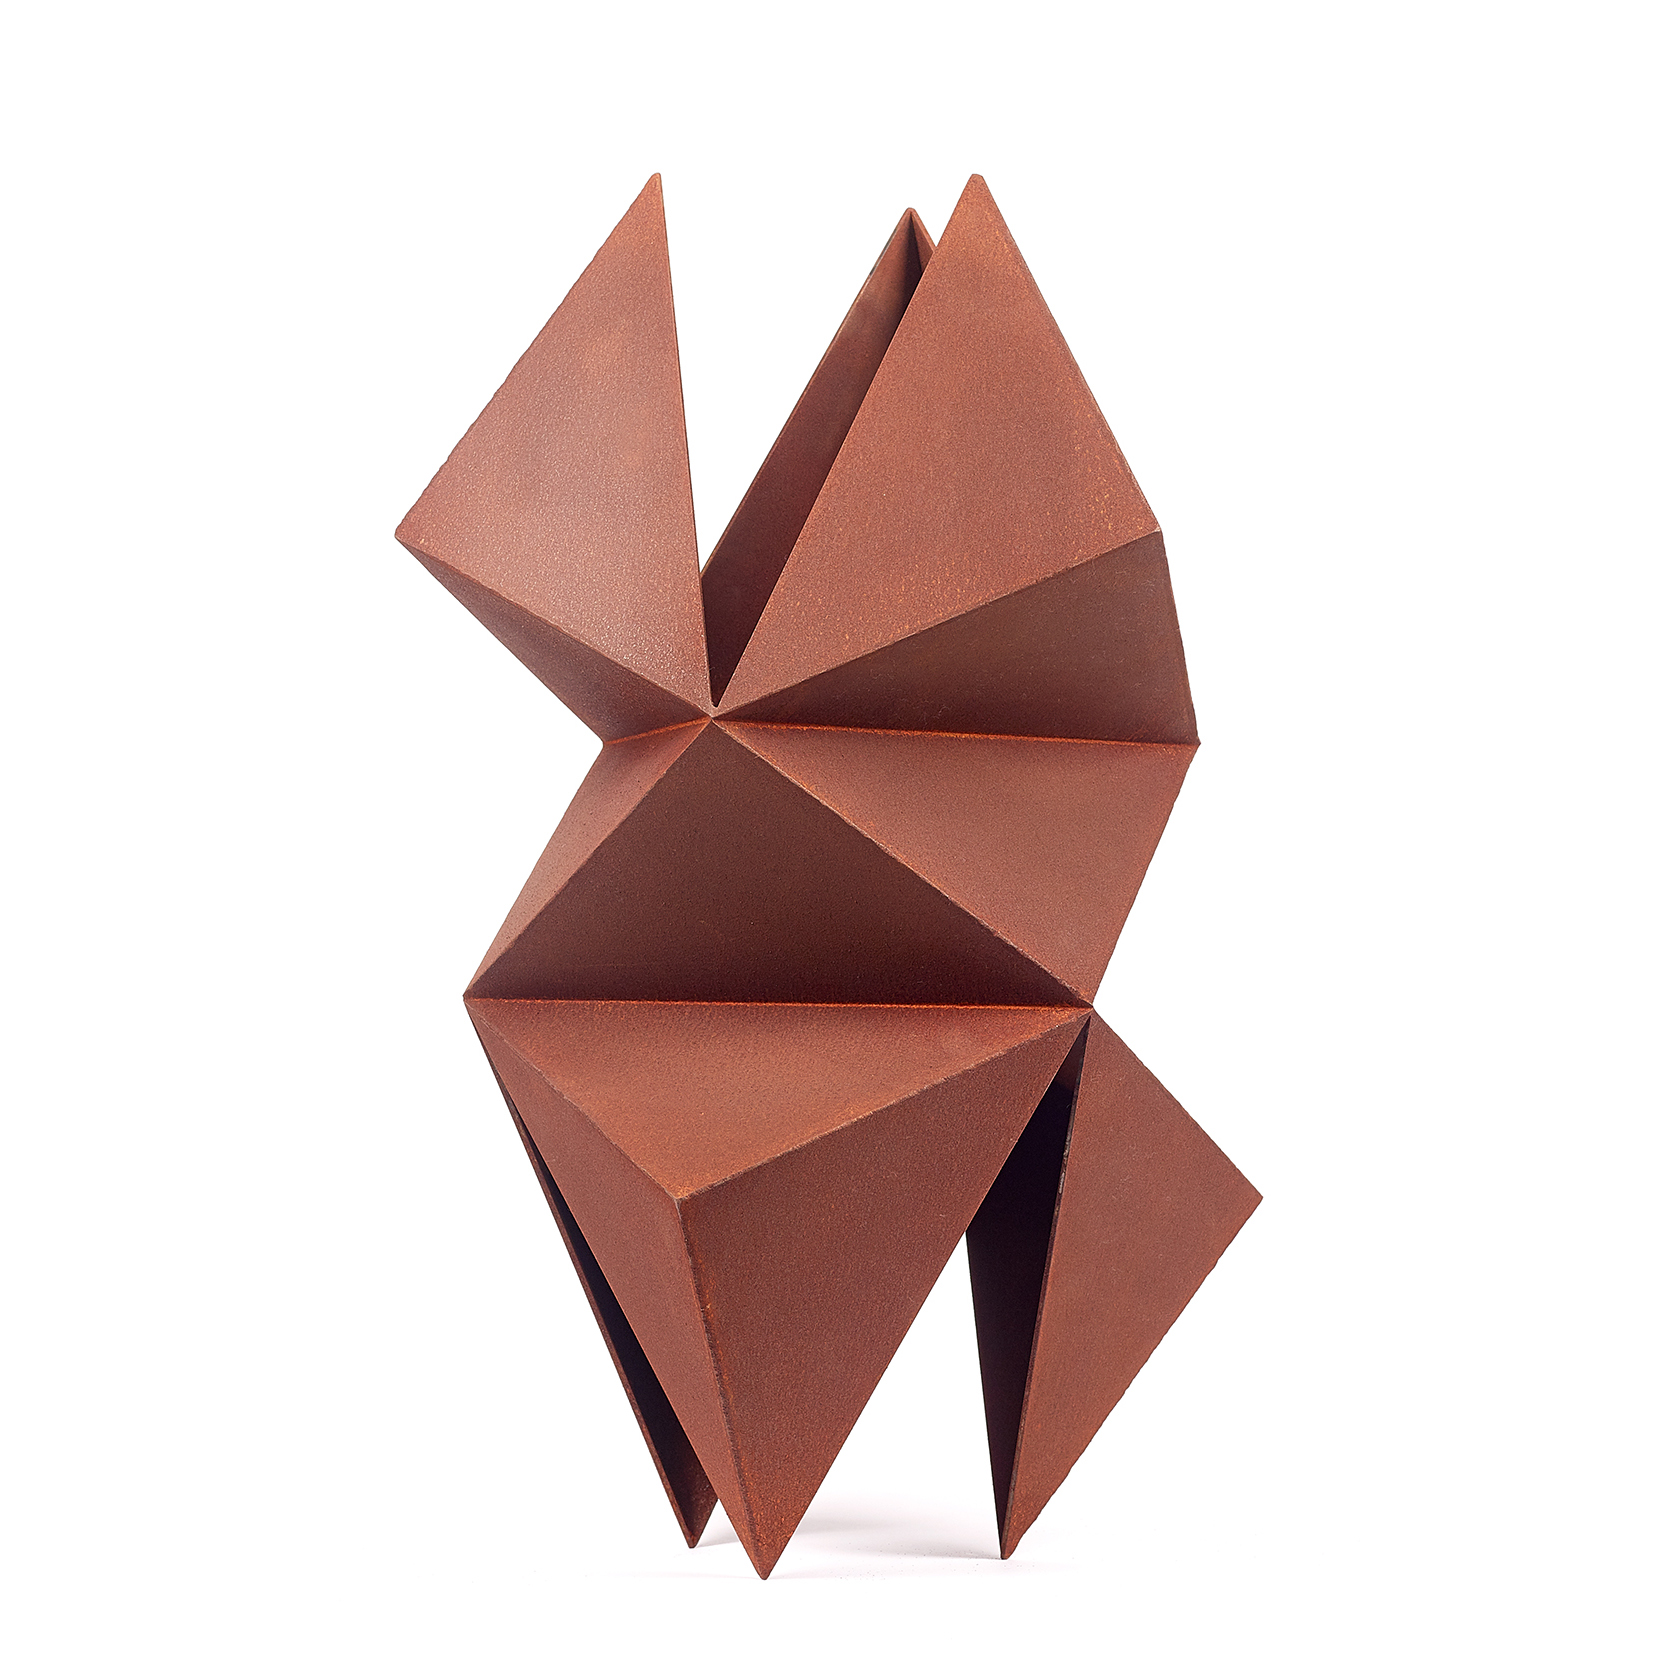 2018_04_08_will_nash_corten_isosceles_001_int_web_square.jpg